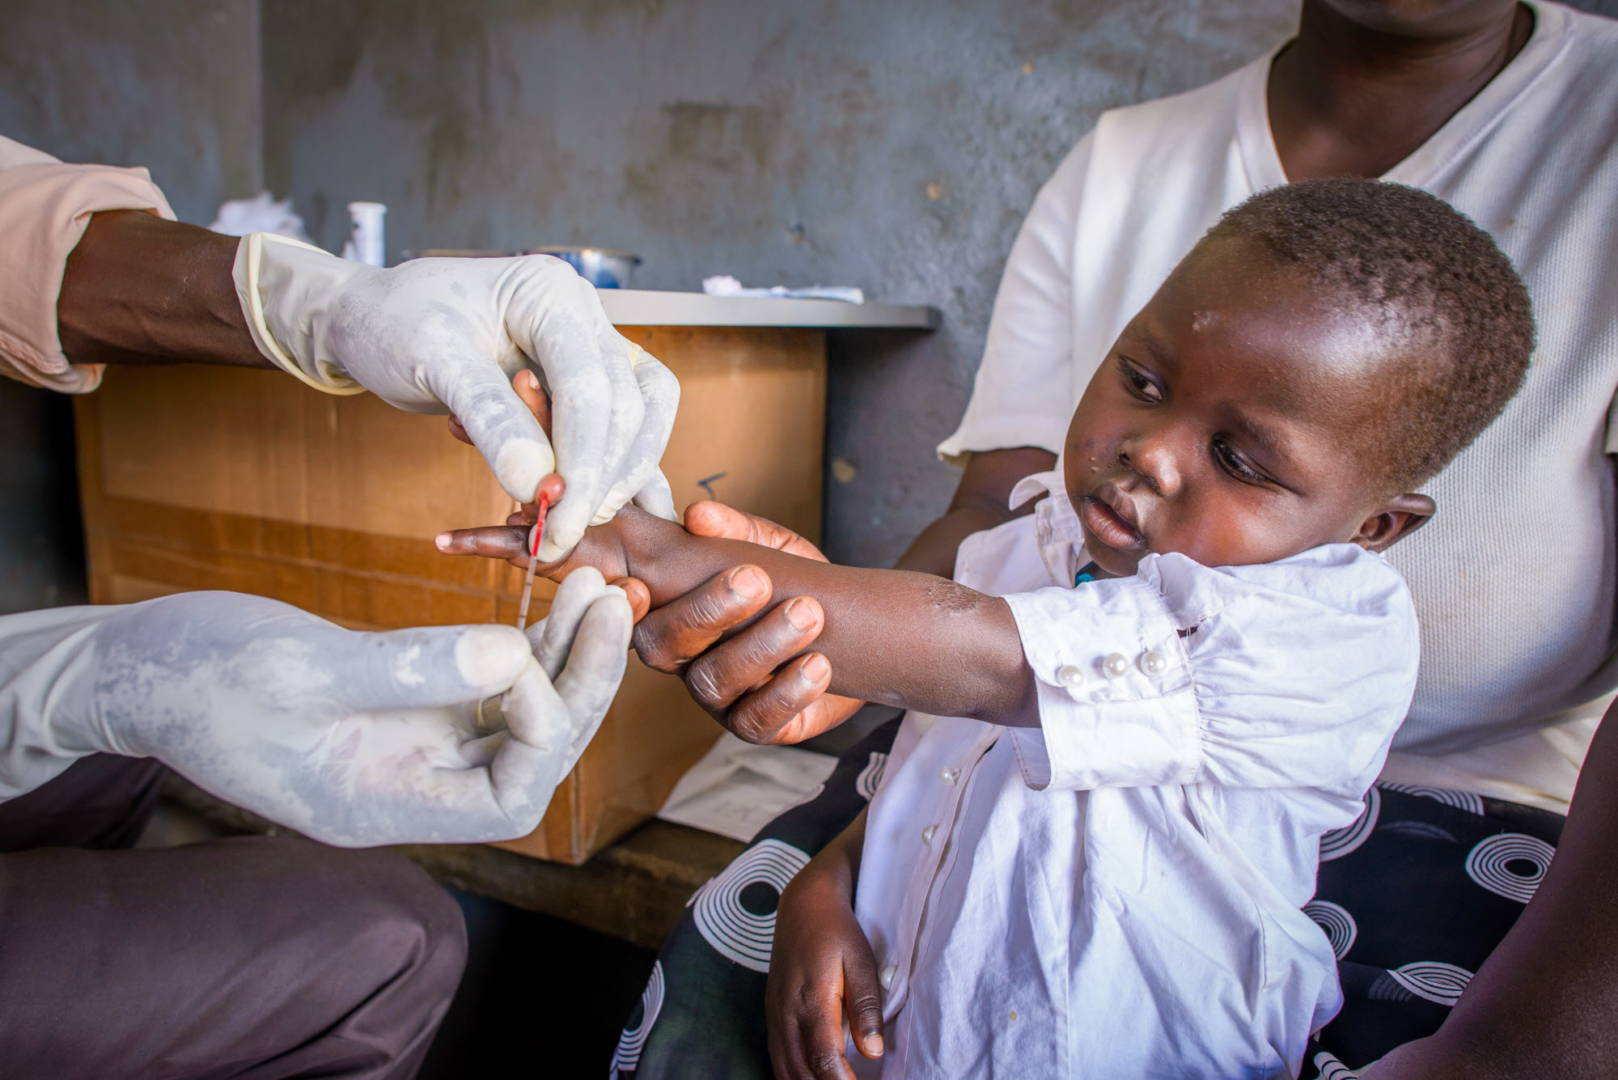 This World AIDS Day, Dec. 1, families and health workers celebrate that child HIV rates dropped 60 percent between 2009 and 2015 in 21 sub-Saharan African countries including Uganda.